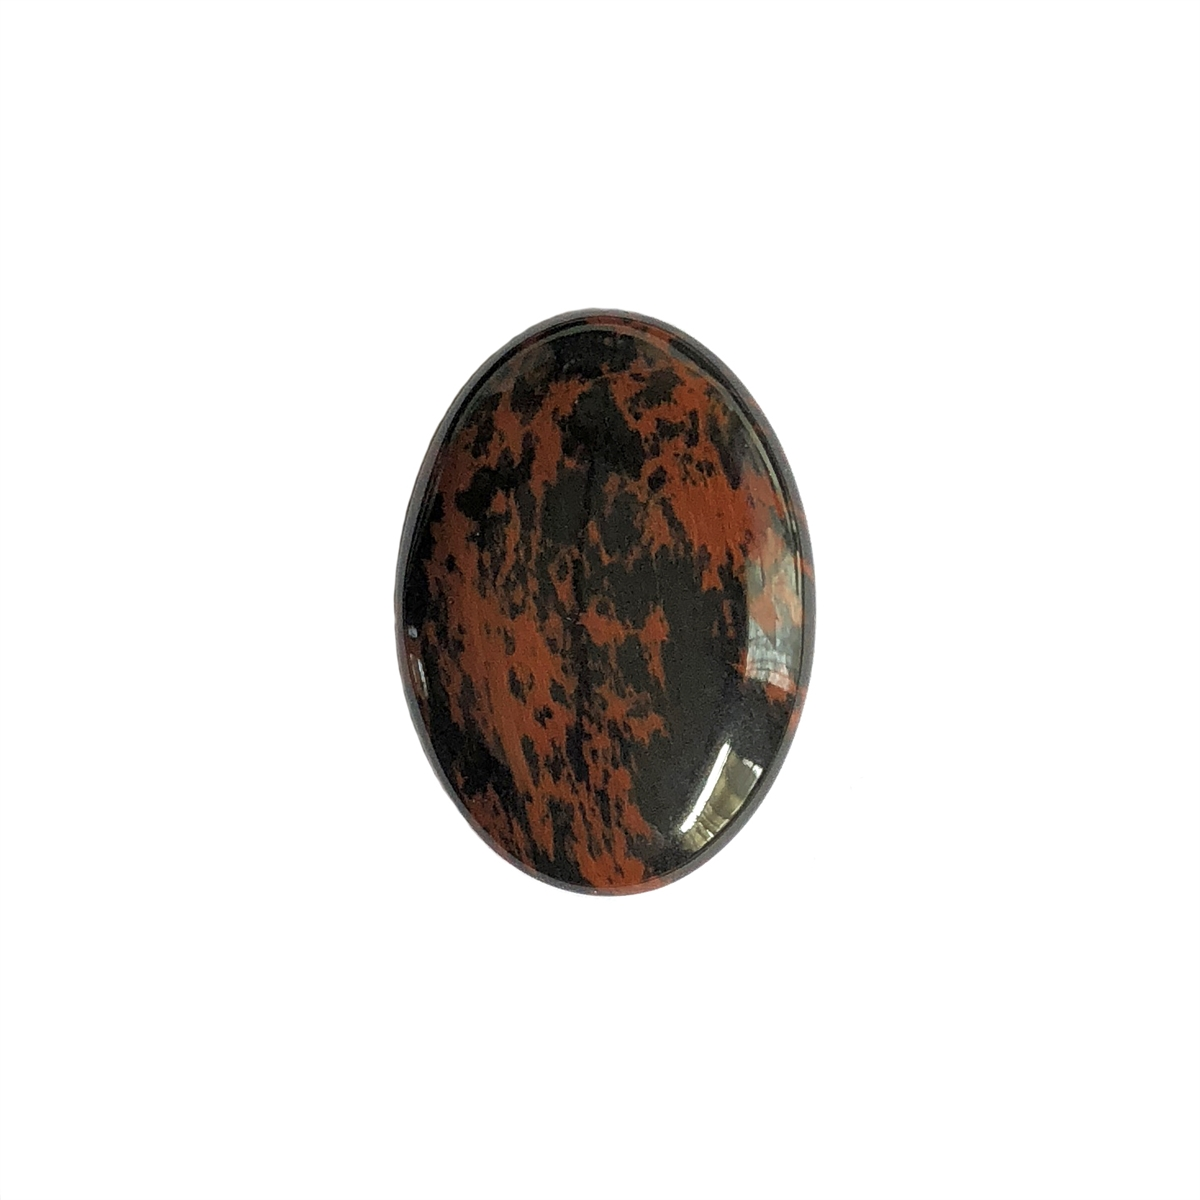 Resin Cabochons 25X18mm Cameos Matte Red Brown Oval Flowers and Leaves